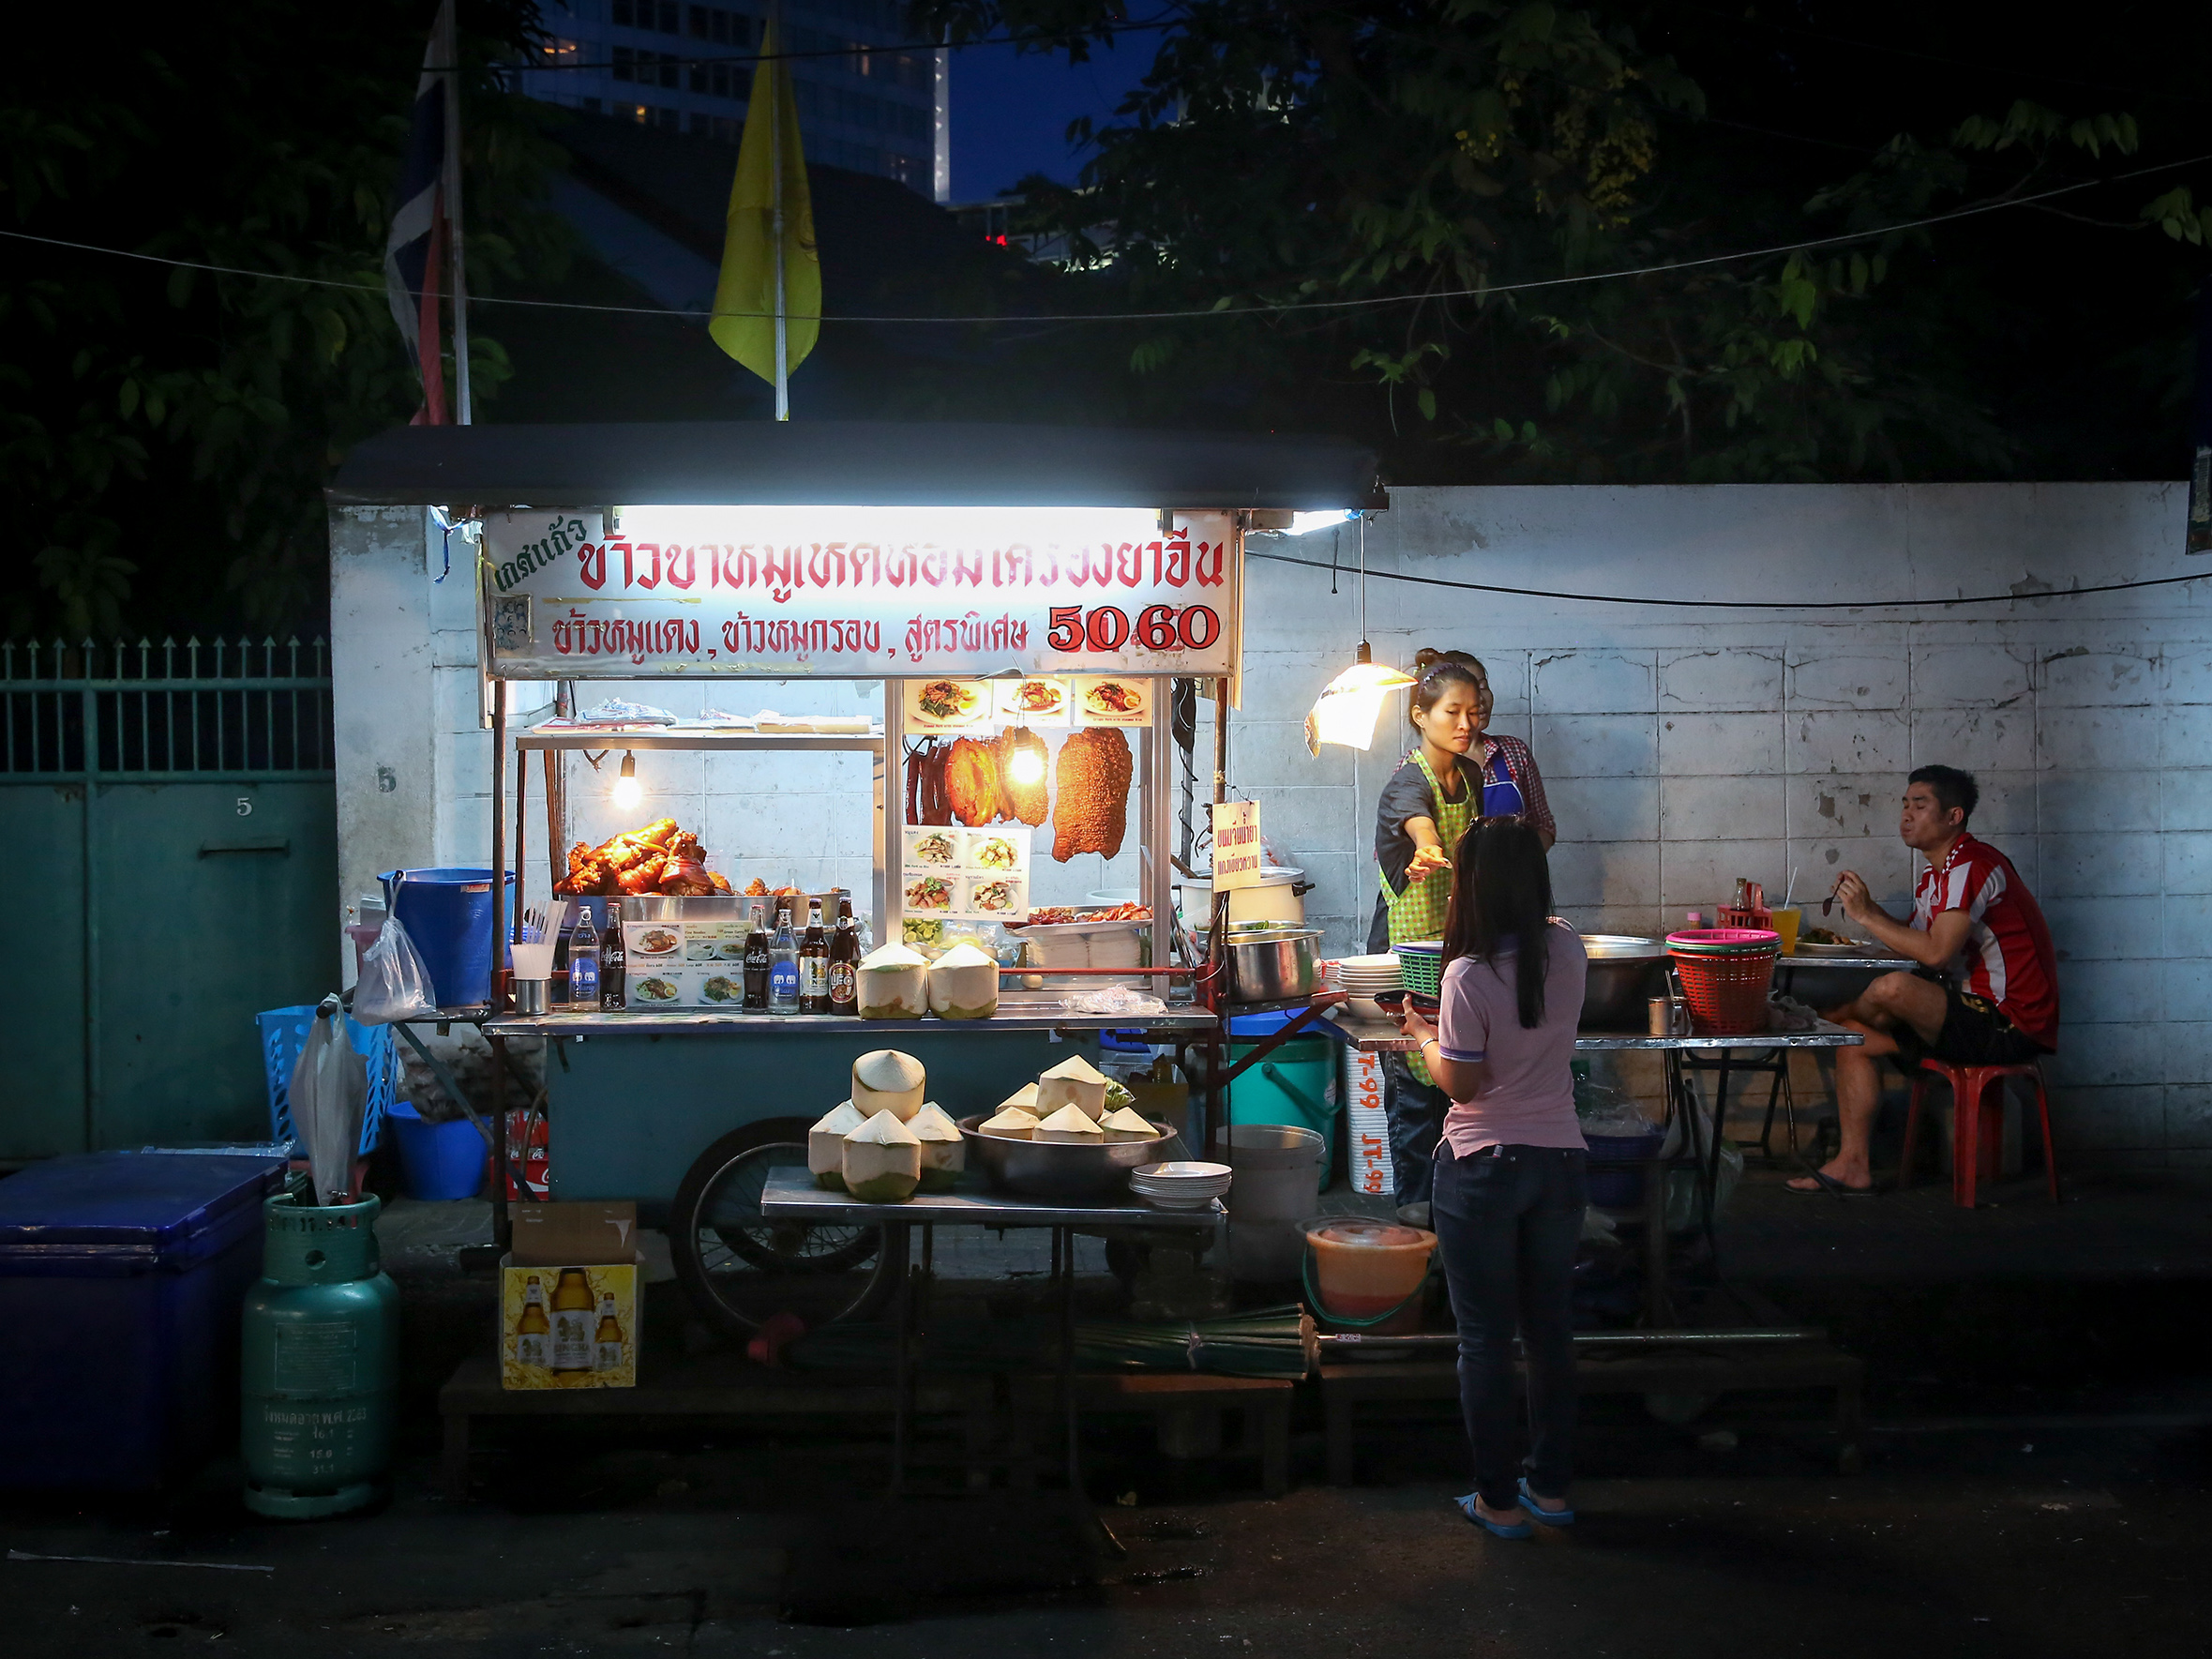 Street Food 2015 | Illustrations | Thong Lo -market | Bangkok 2014